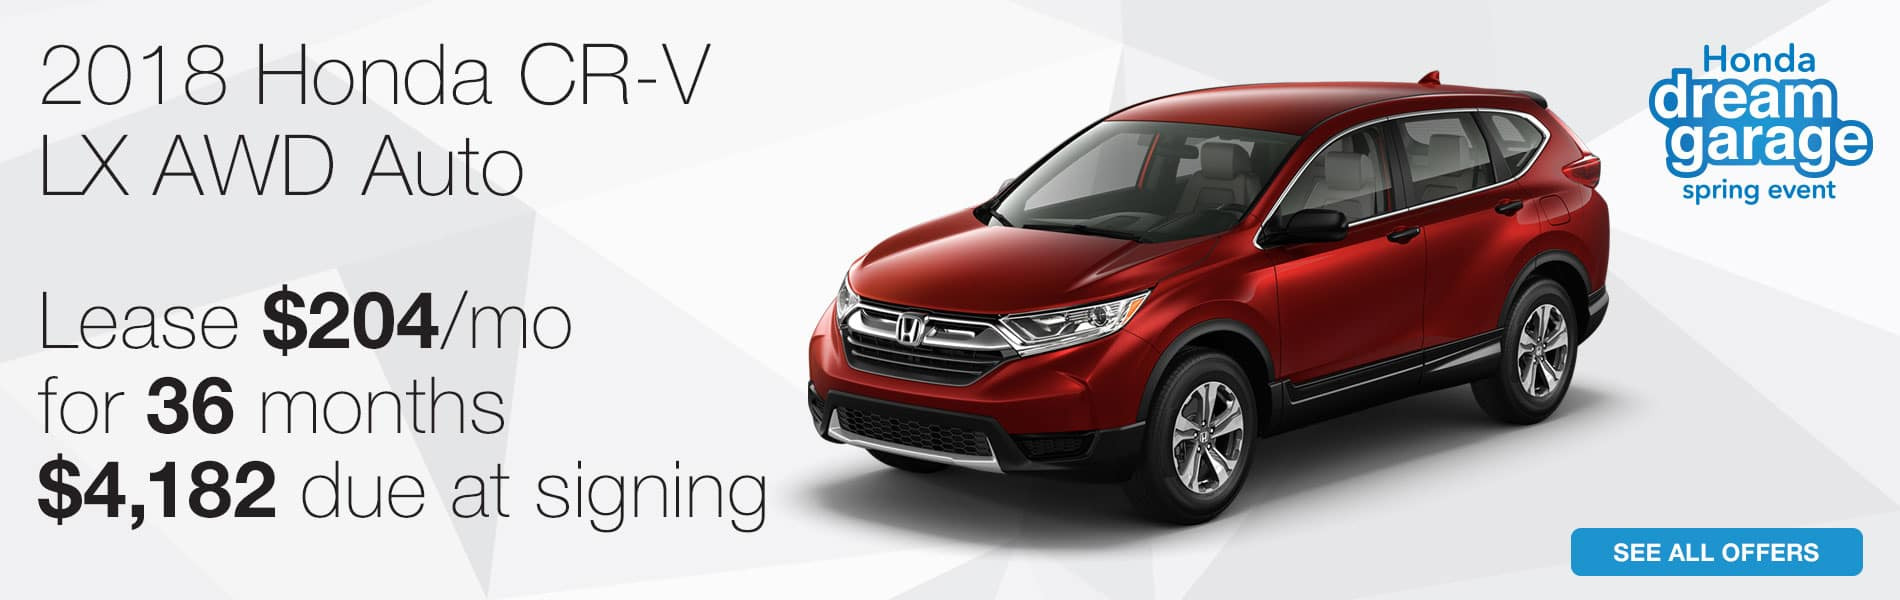 Lease a new 2018 Honda CR-V LX AWD for $204 per month with $4,182 due at signing